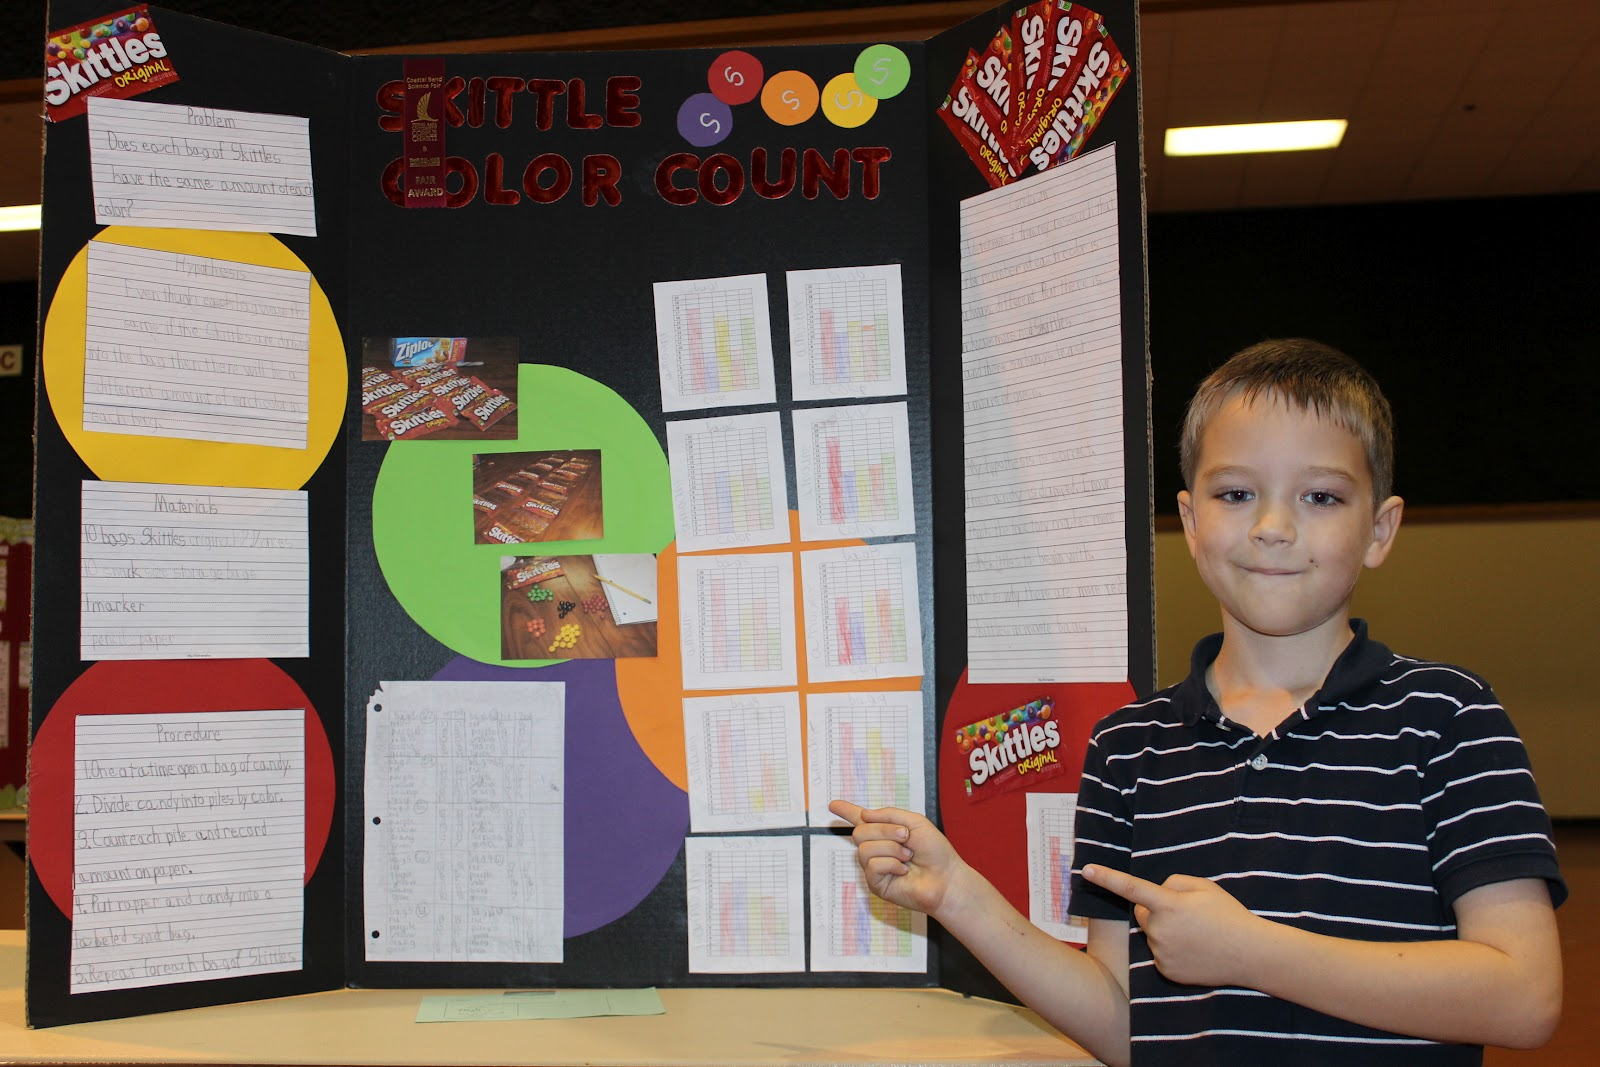 science fair projects project winning grade 3rd 1st william were experience hard cup placing proud entire ended region